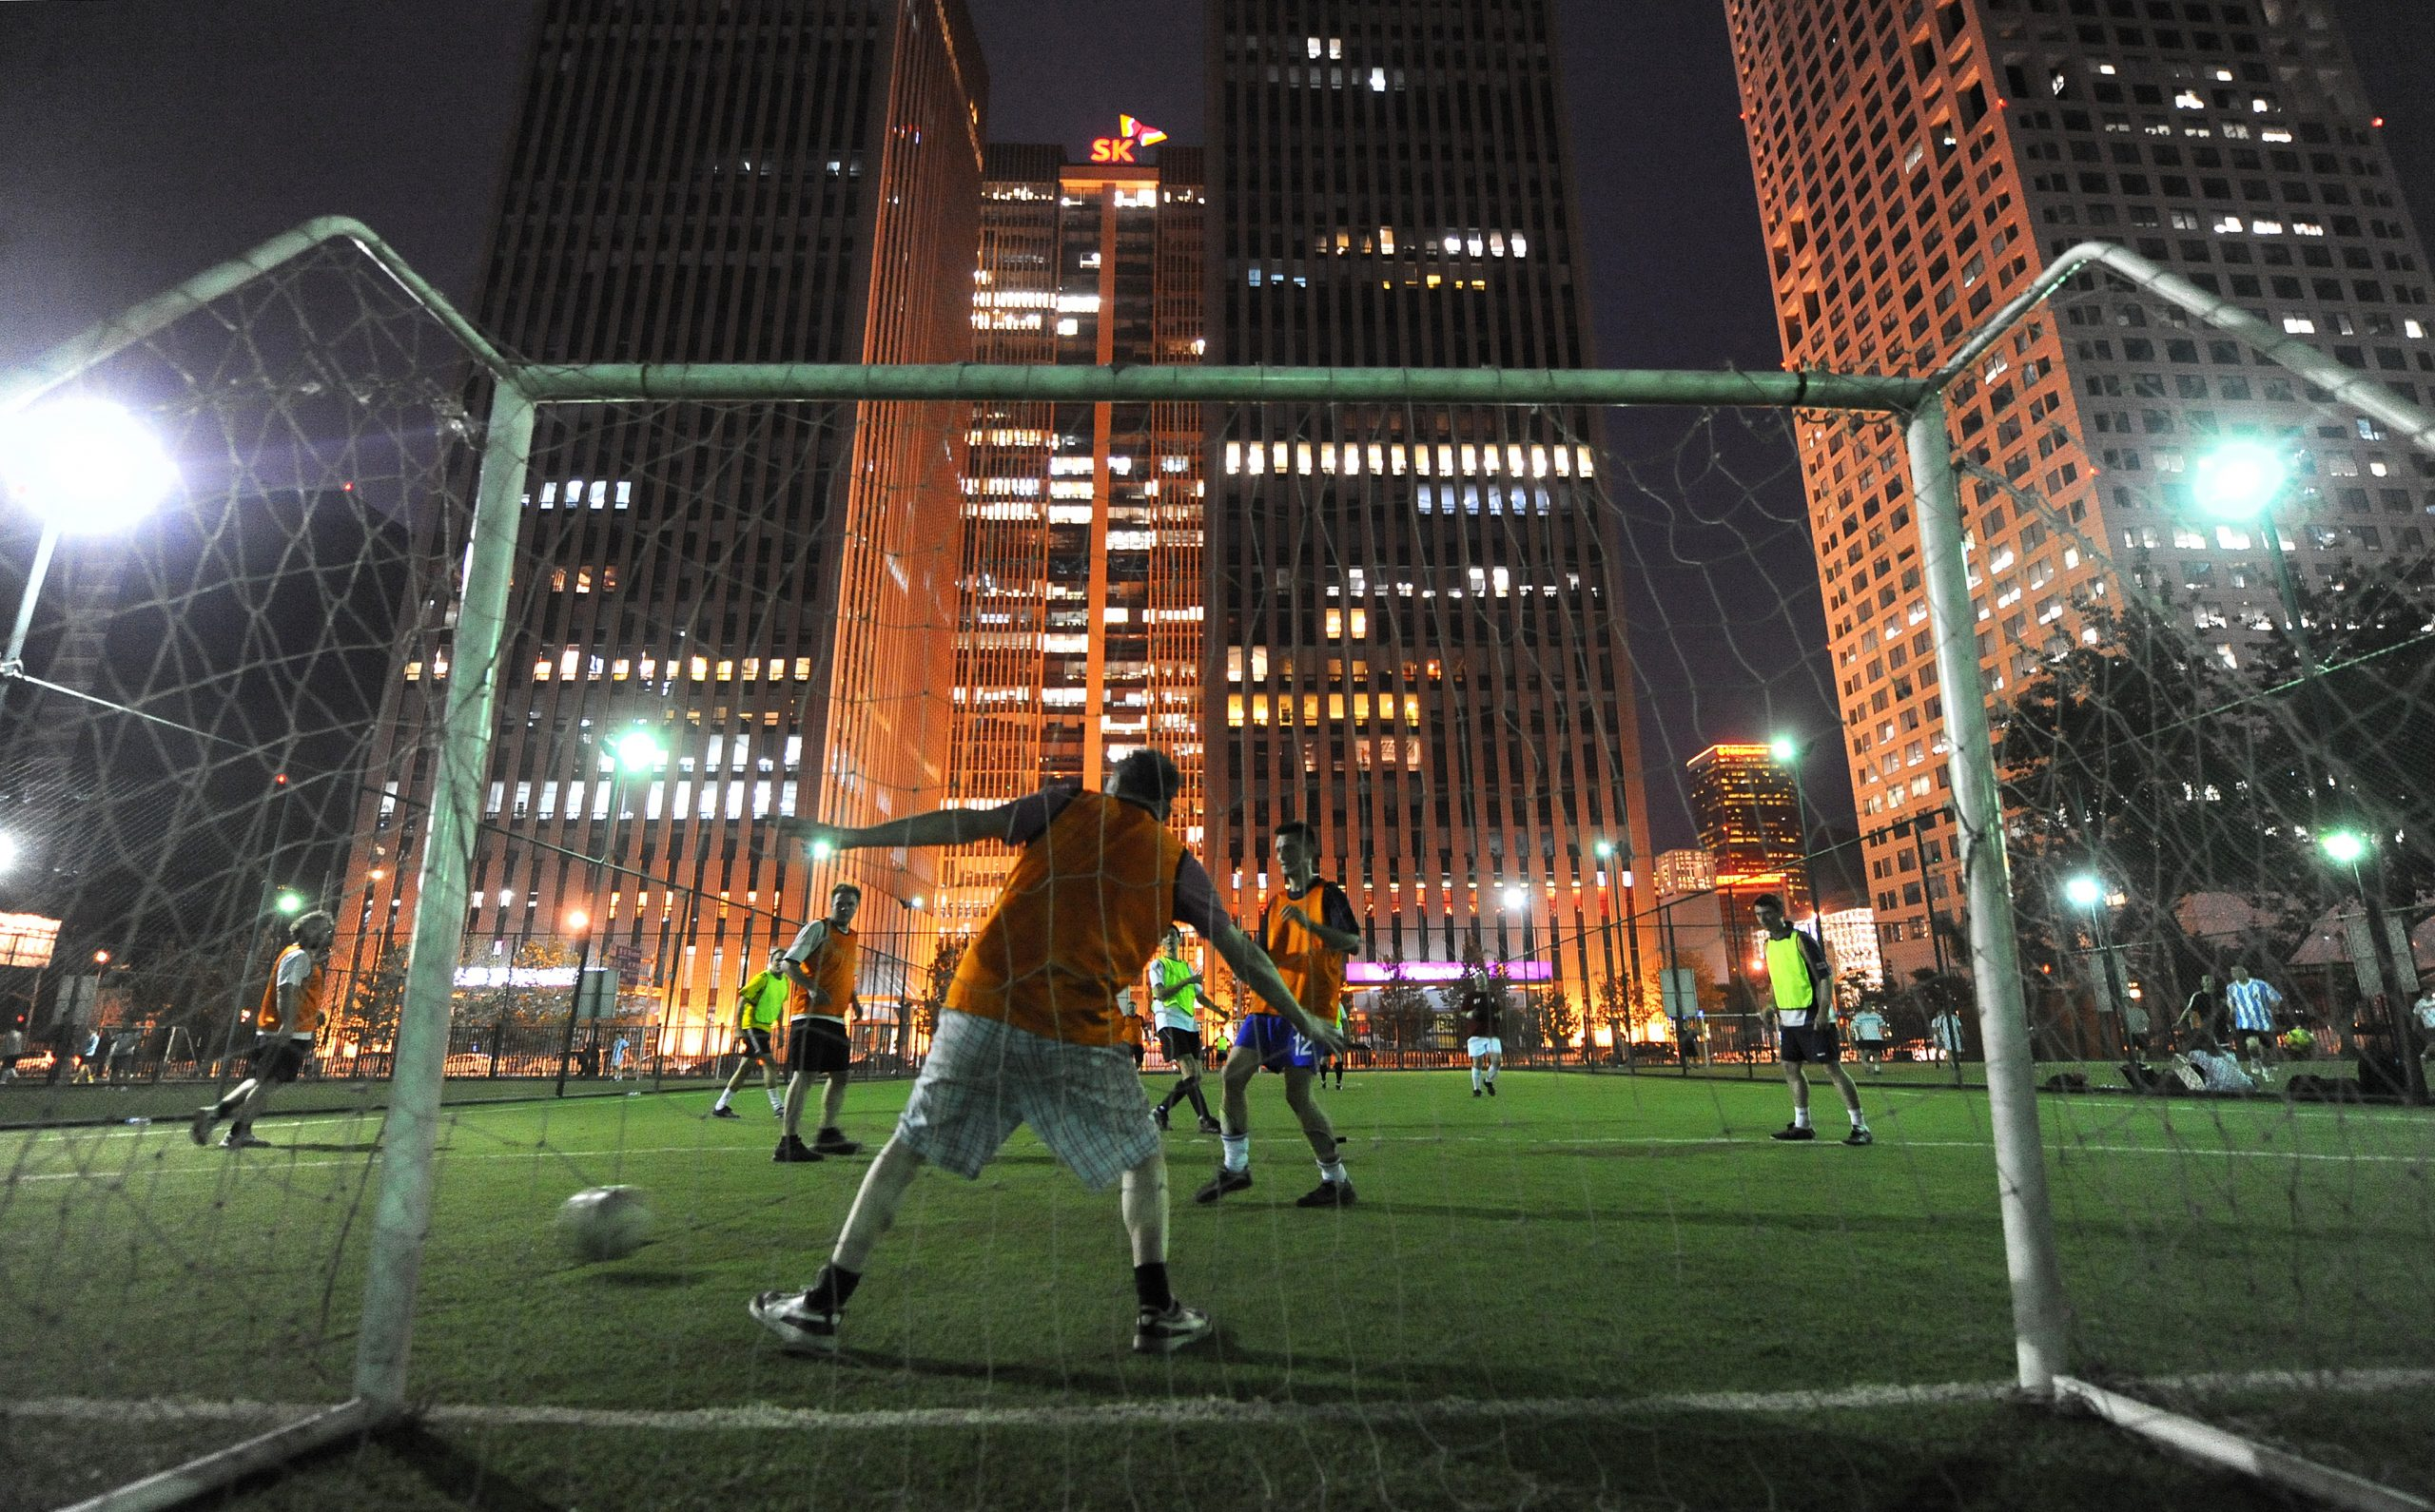 A five-a-side pickup game takes place under floodlights on an artifical grass pitch beneath office towers in Beijing on June 9, 2010. World Cup fever is sweeping across Asia as hundreds of millions of fans in the football-mad region count down to the June 11 start of an event that's a surefire winner for pubs, clubs and bookmakers. AFP PHOTO/Frederic J. BROWN (Photo credit should read FREDERIC J. BROWN/AFP/Getty Images)